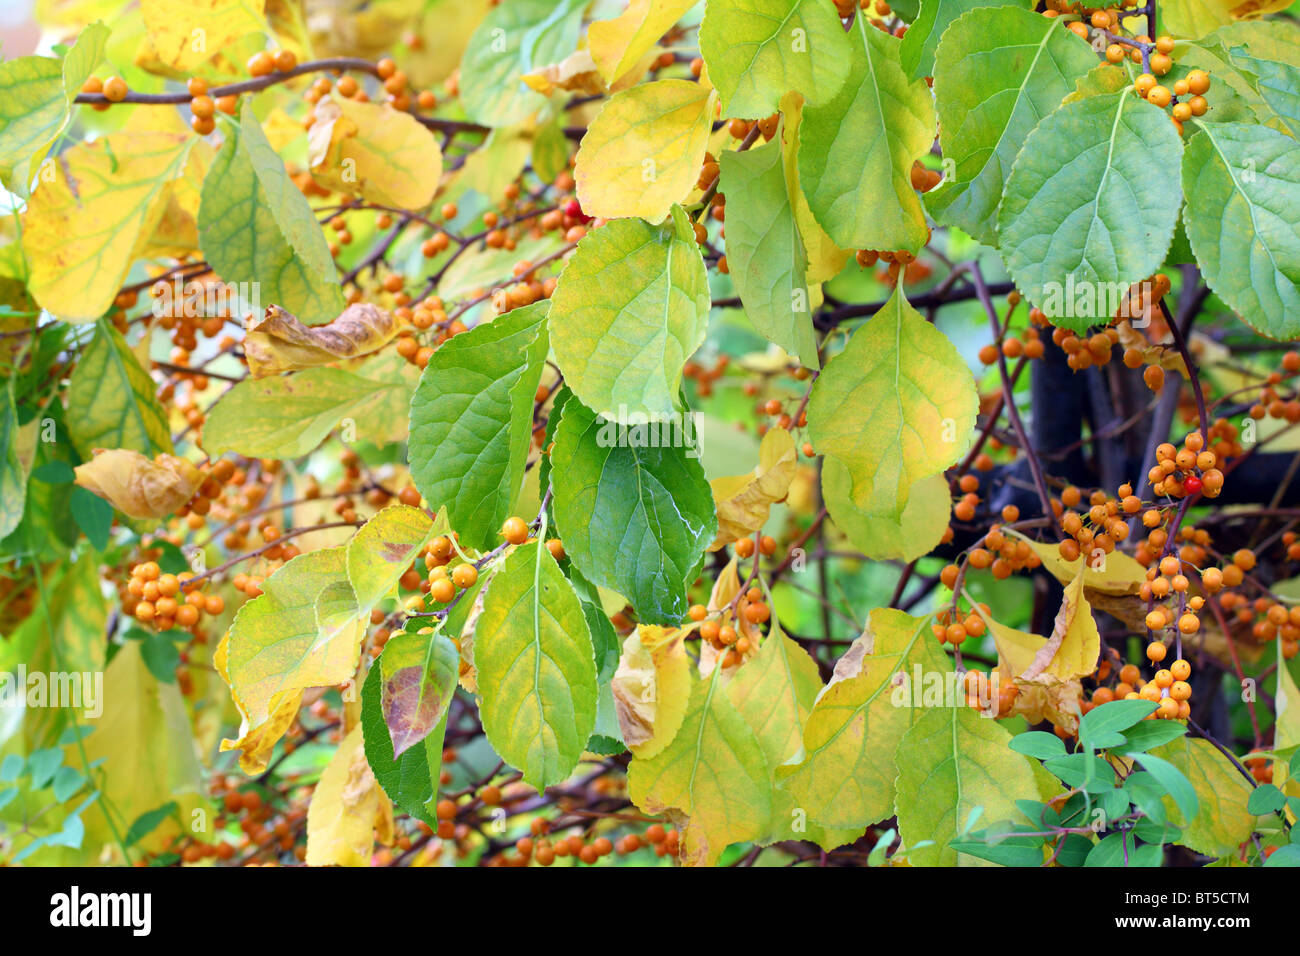 Chinese Bittersweet Oriental Bittersweet Autumn Fruits Berries And Stock Photo Alamy,Napoleon Pastry Near Me